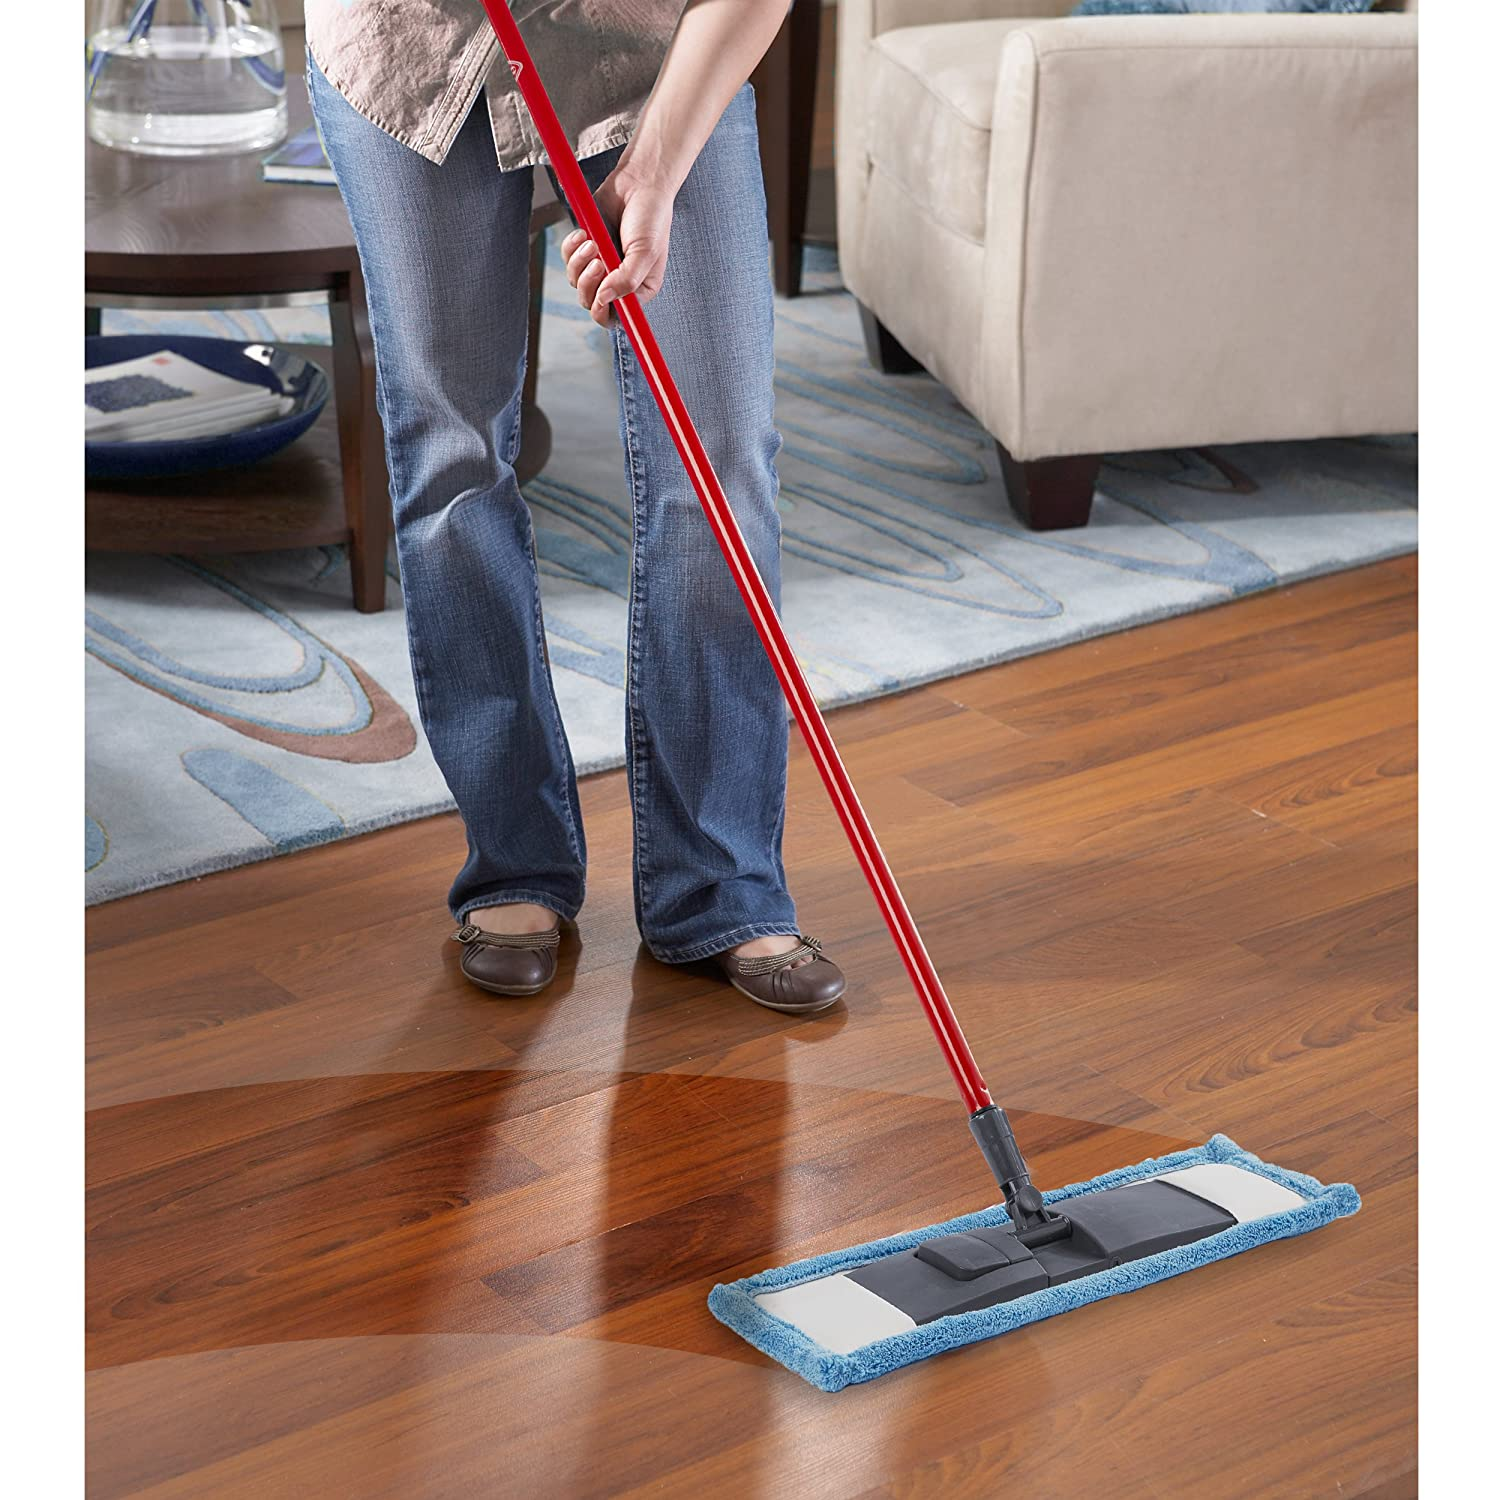 Kitchen Floor Mop Amazoncom O Cedar Microfiber Performer Mop Refill Home Kitchen